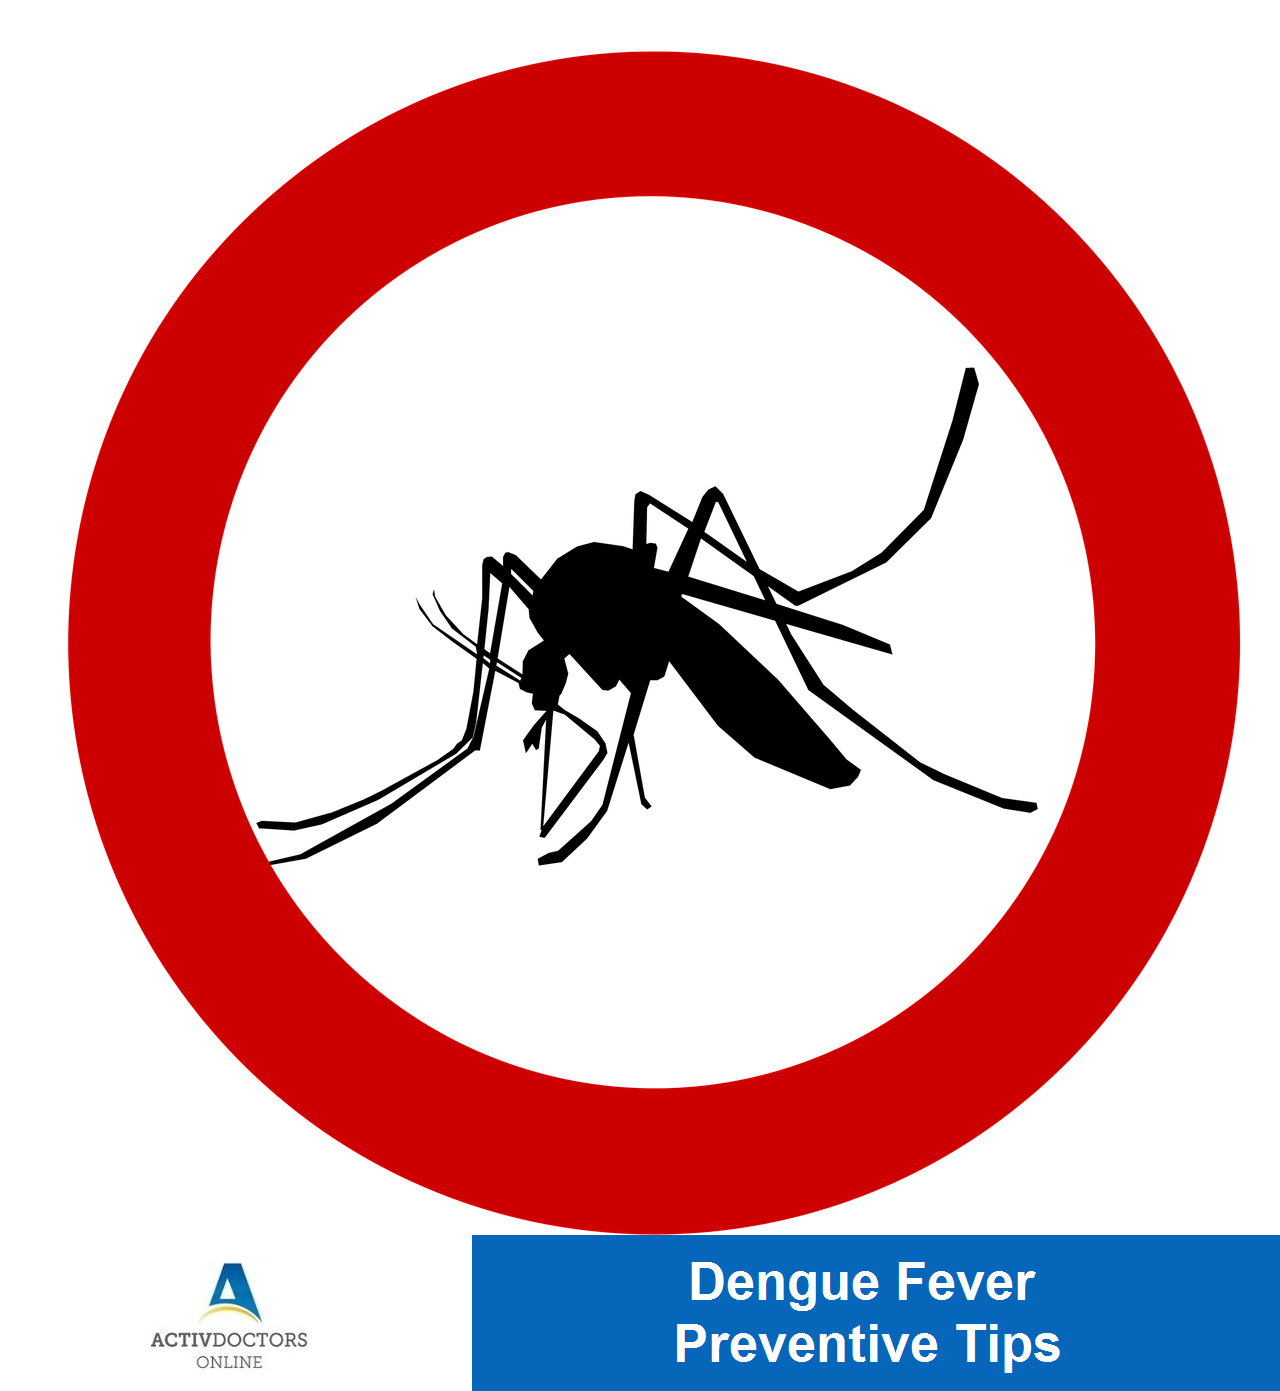 Dengue Fever - Preventive Tips